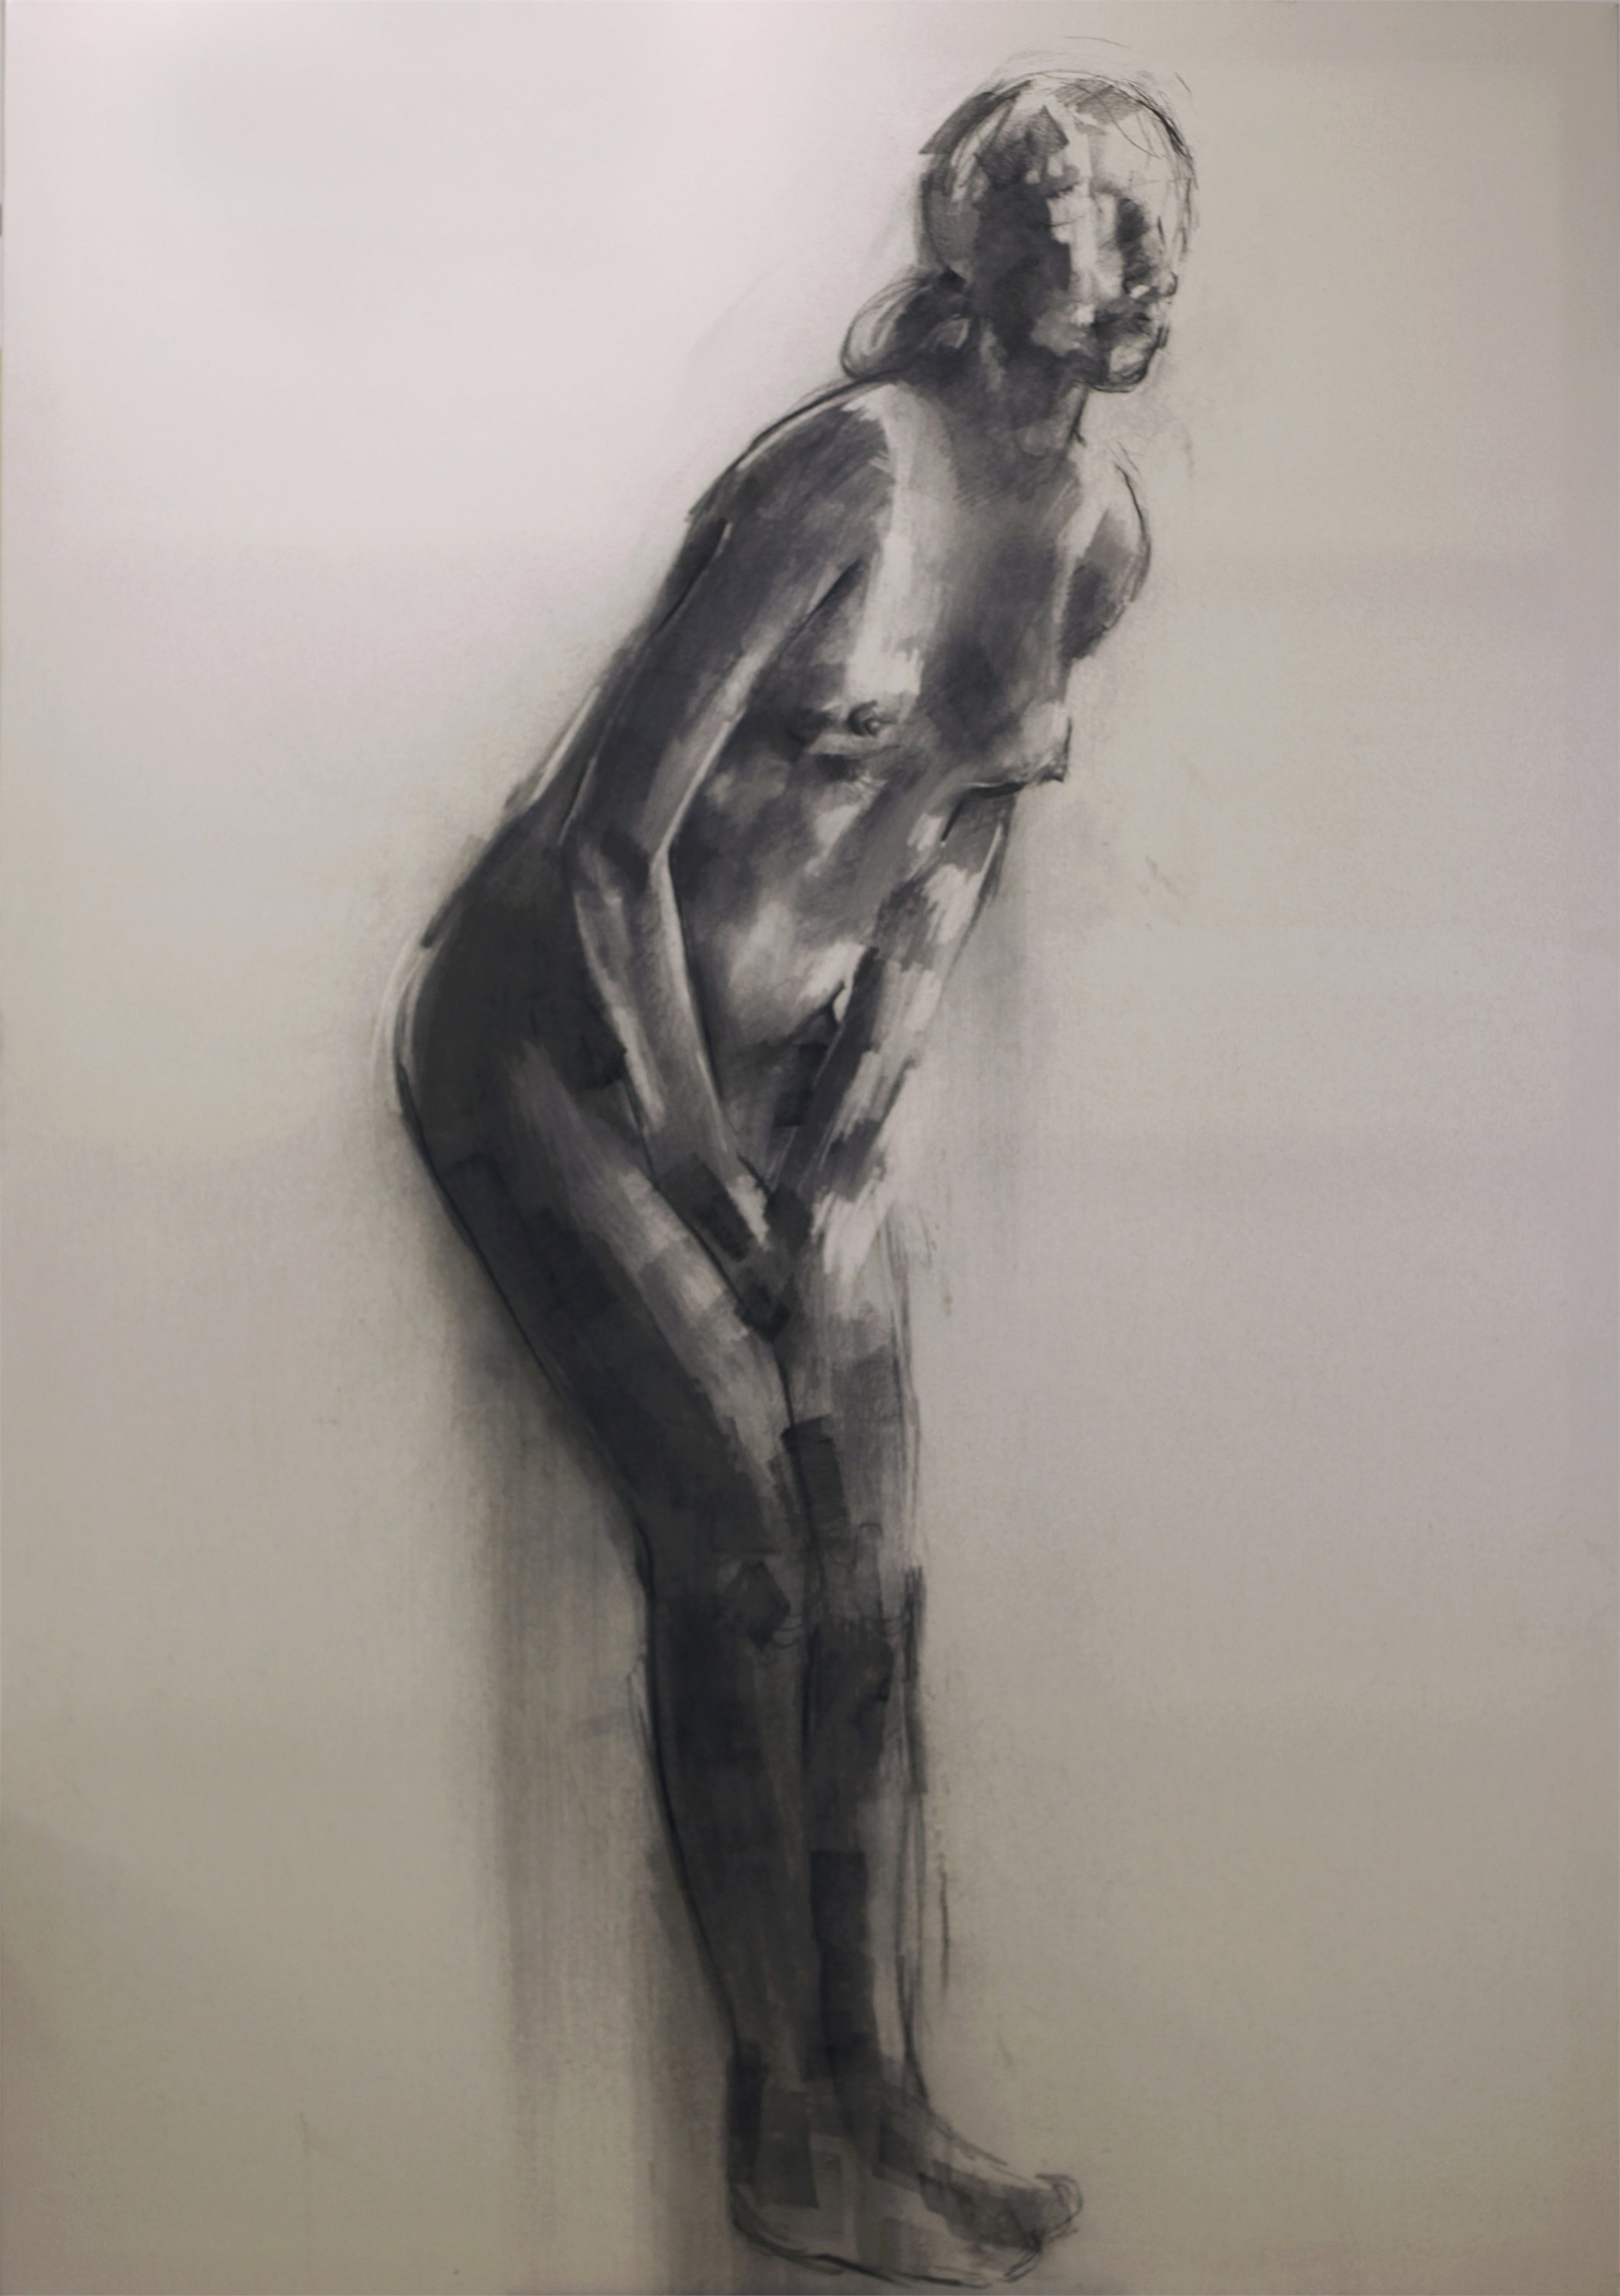 Nude 3, original B&W Canvas Drawing and Illustration by Giorgos Kapsalakis